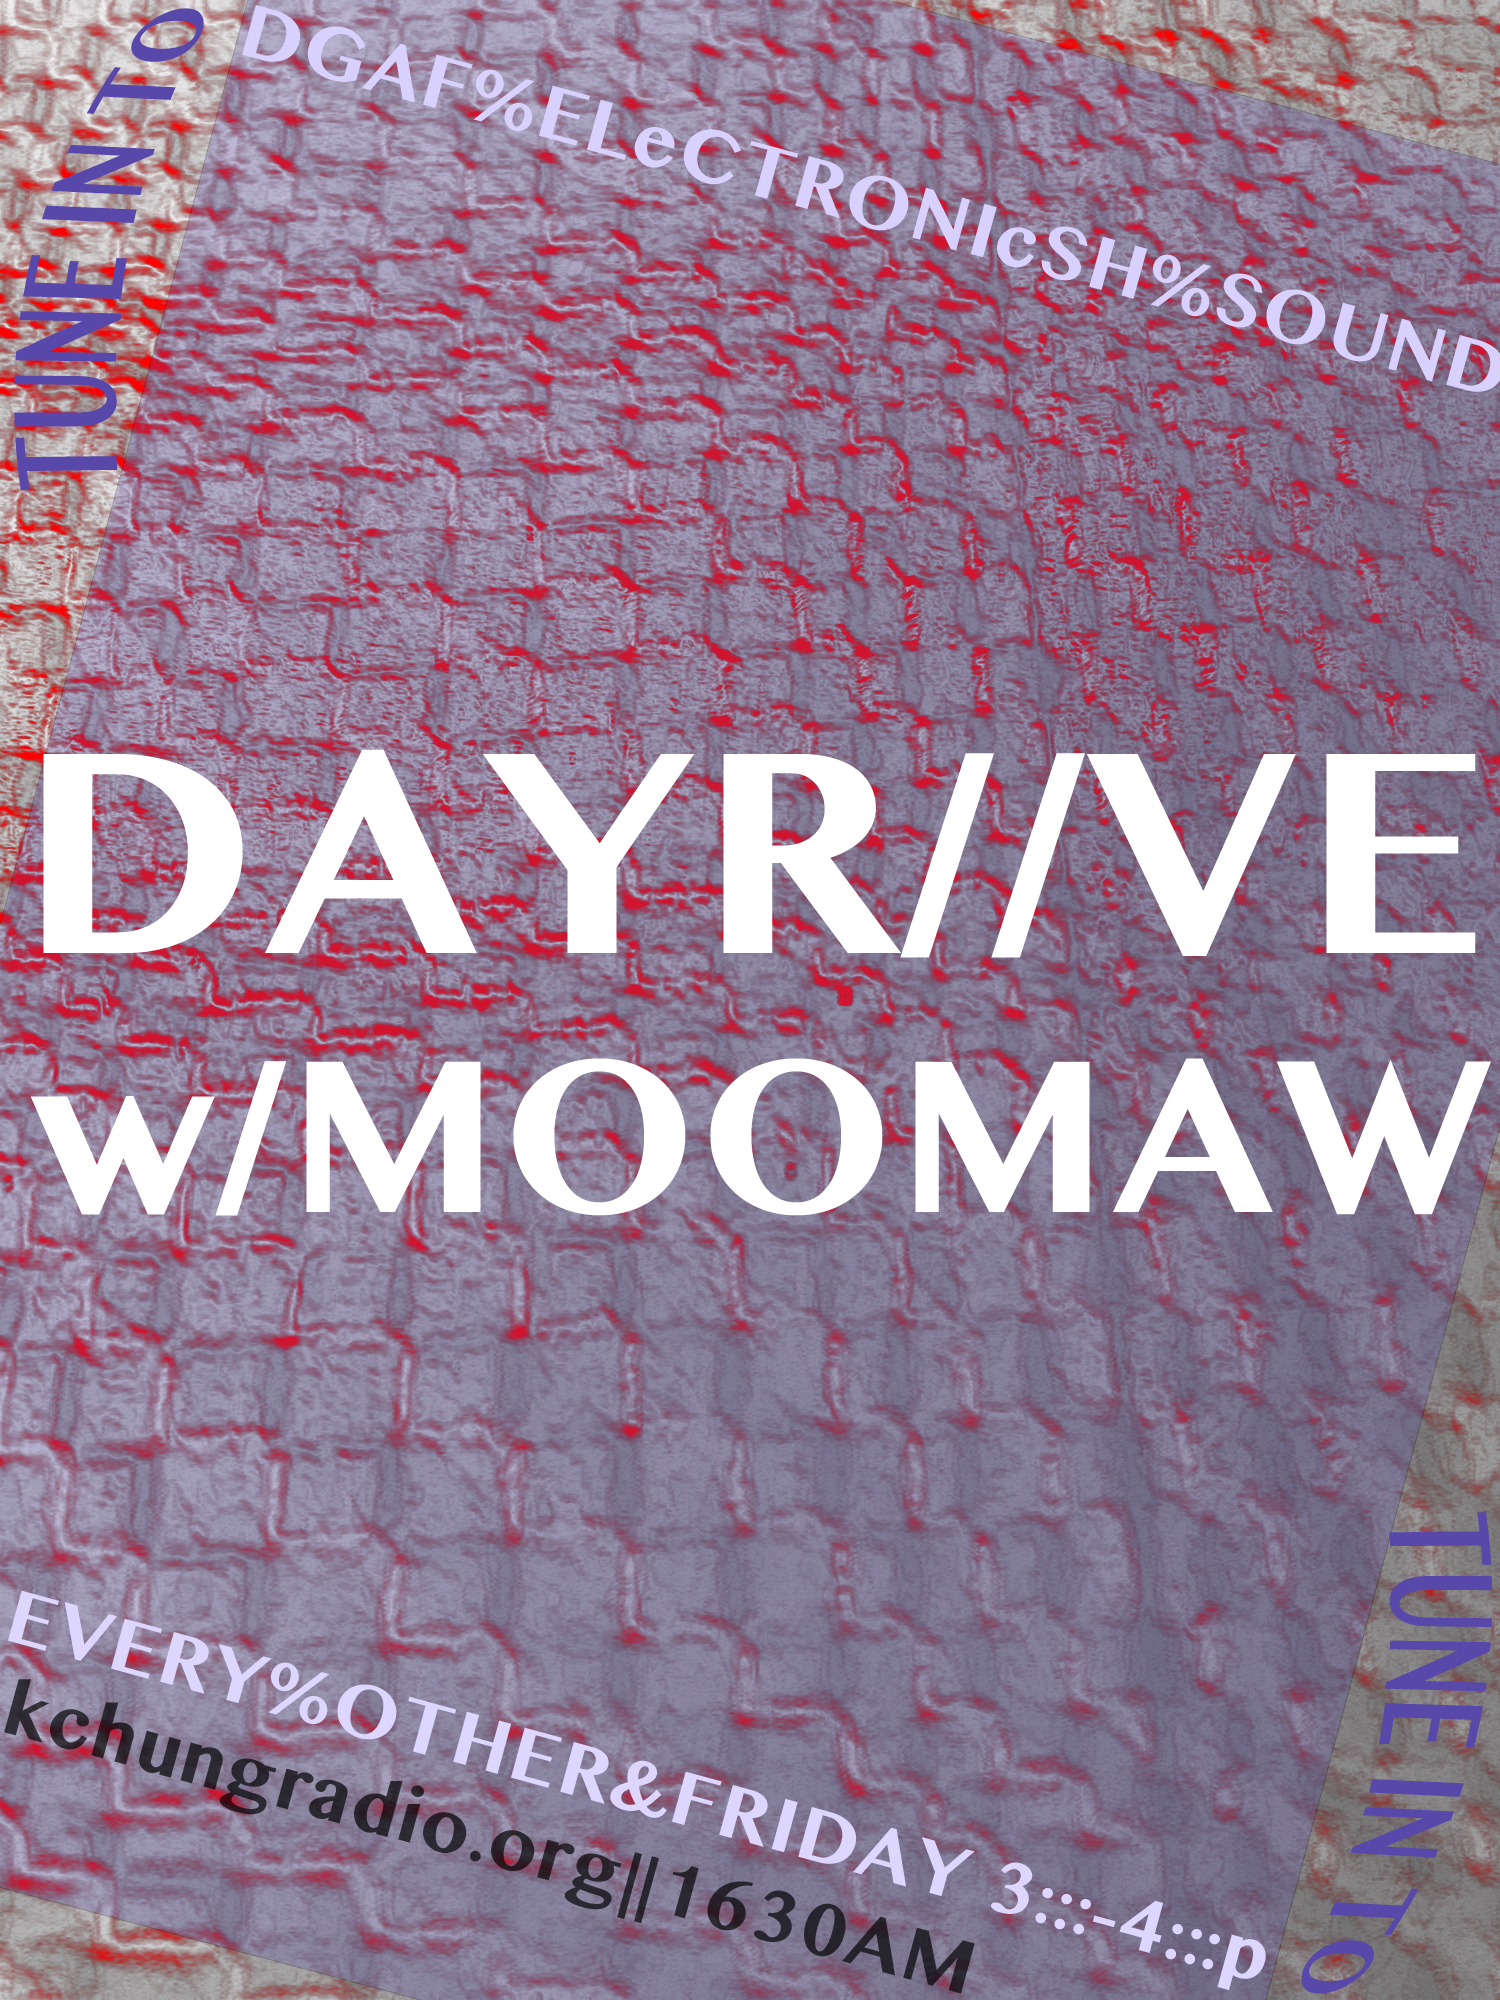 dAYrAVE w/ MOOMAW